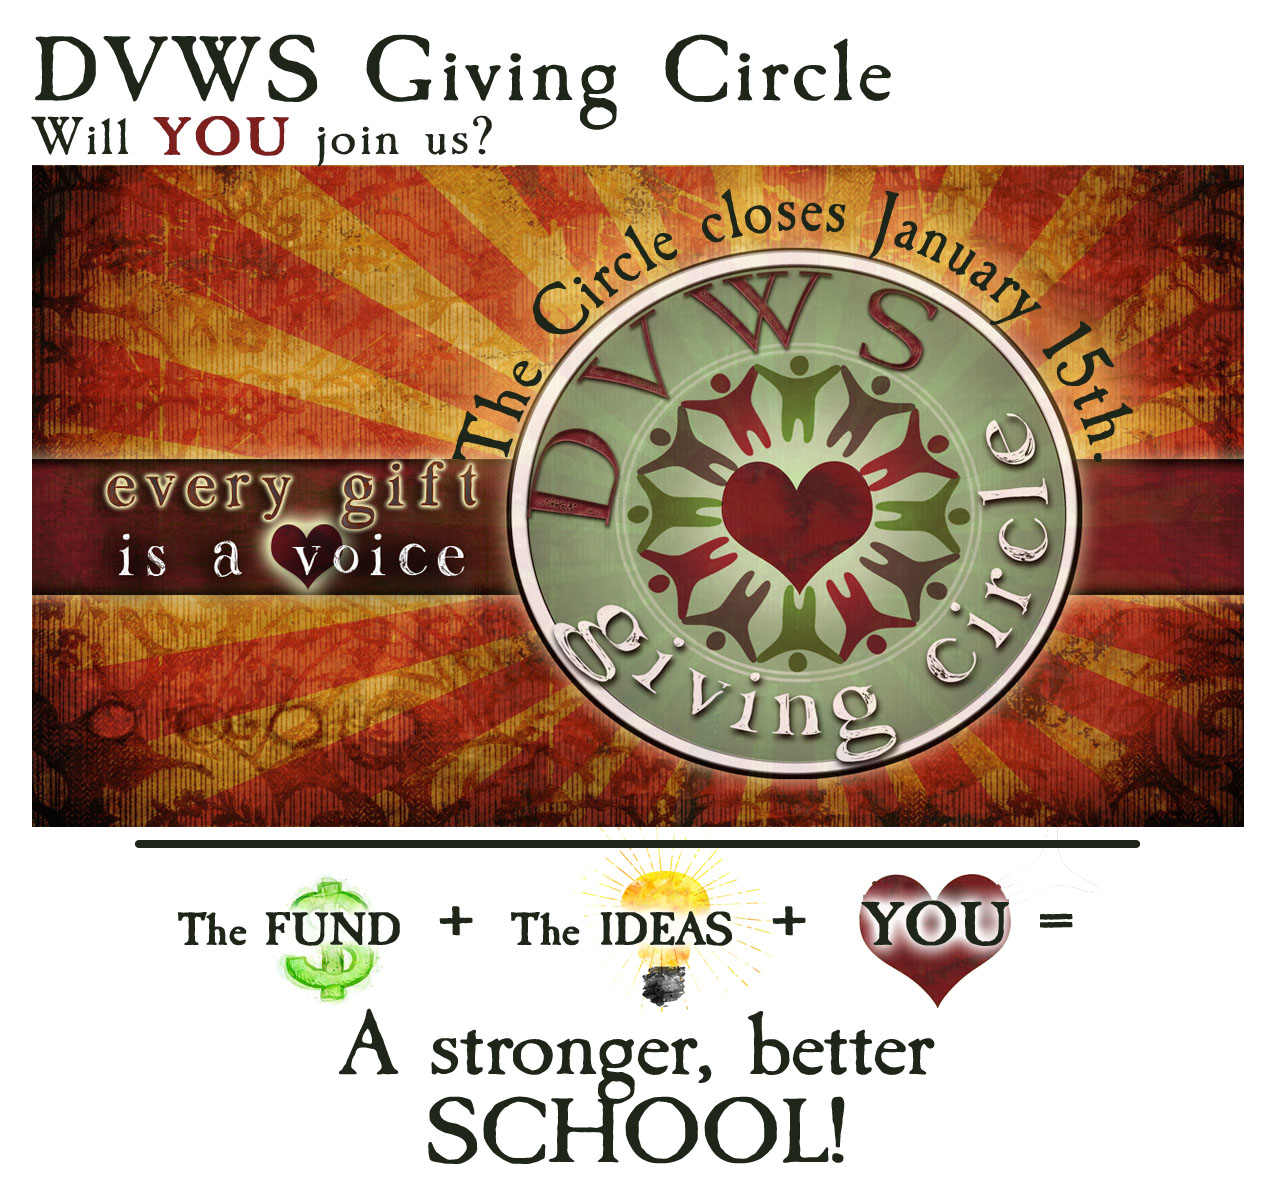 Contact Vinci School: DVWS Giving Circle Vision 1—Do YOU Have A Vision?